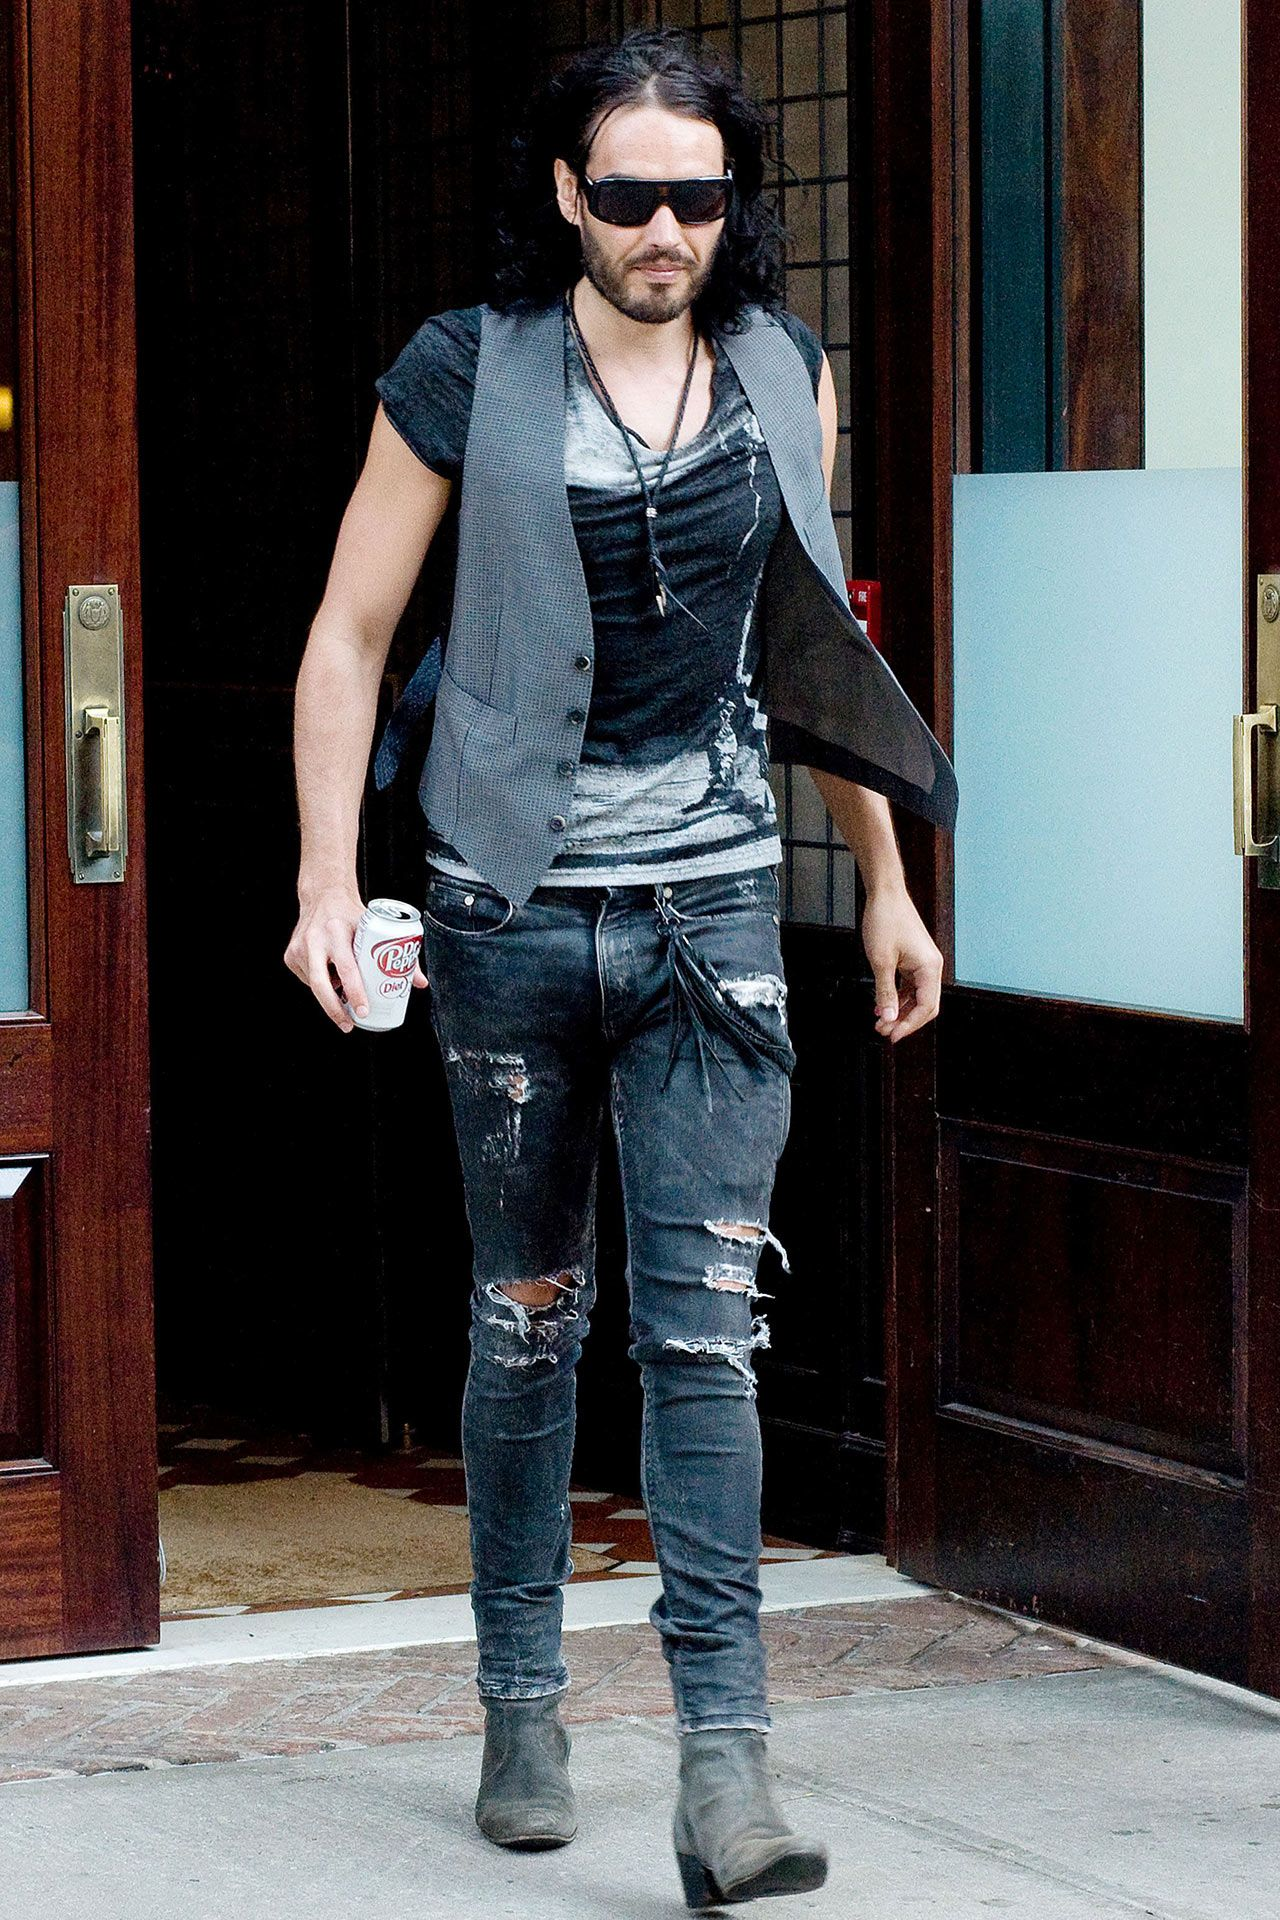 c5698d10f6 Russel Brand outfit. Rippes jeans with waistcoat. Rockstar feeling fashion.